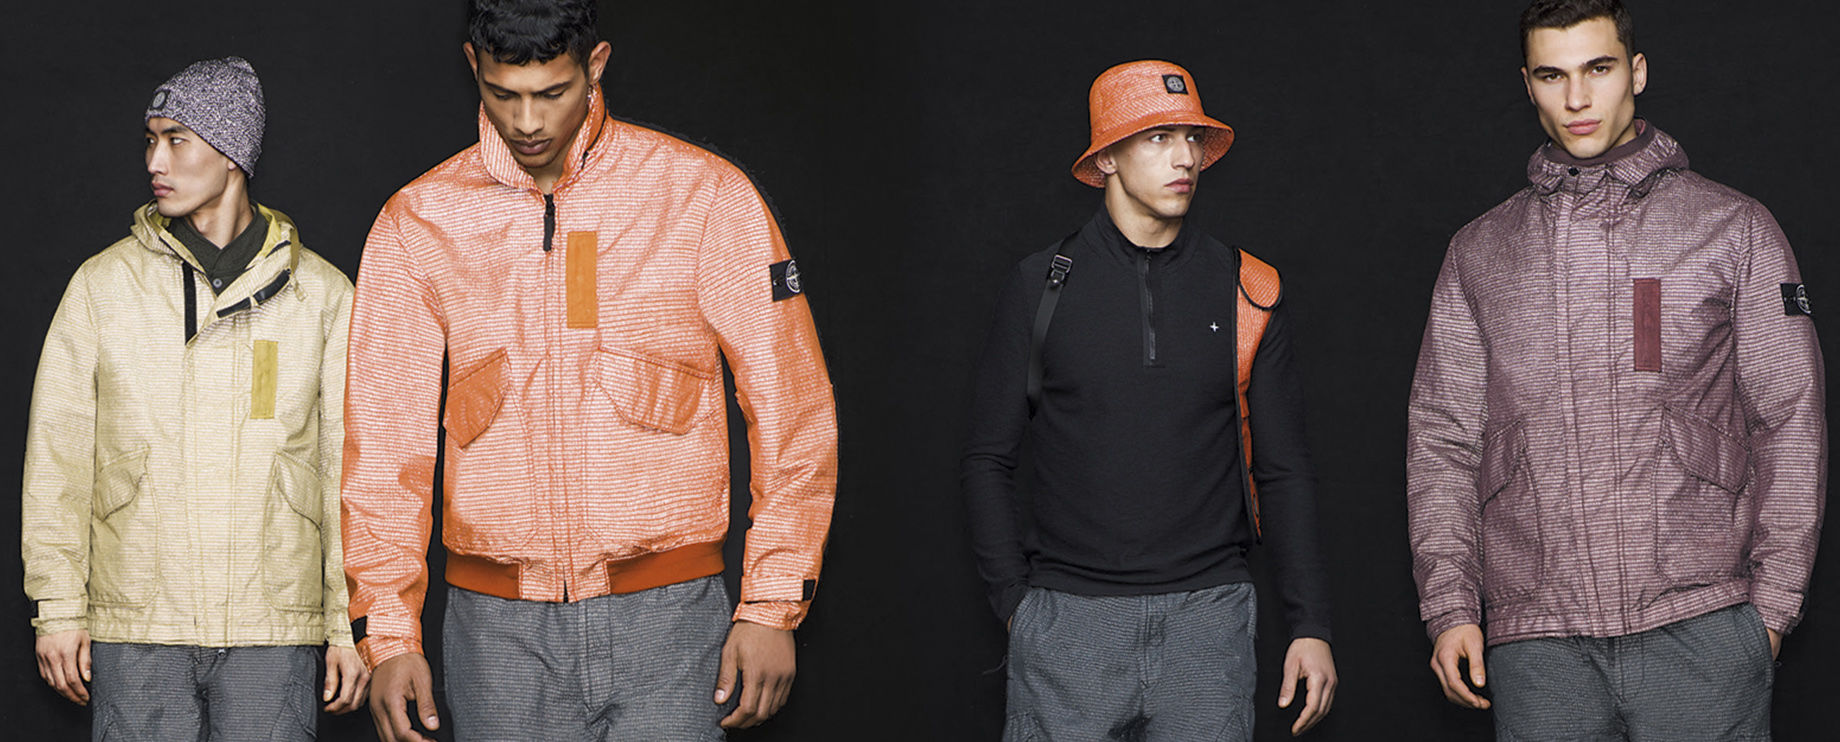 Four models on black background, three wearing different colors and styles of reflective jackets, the fourth wearing a reflective bucket hat.